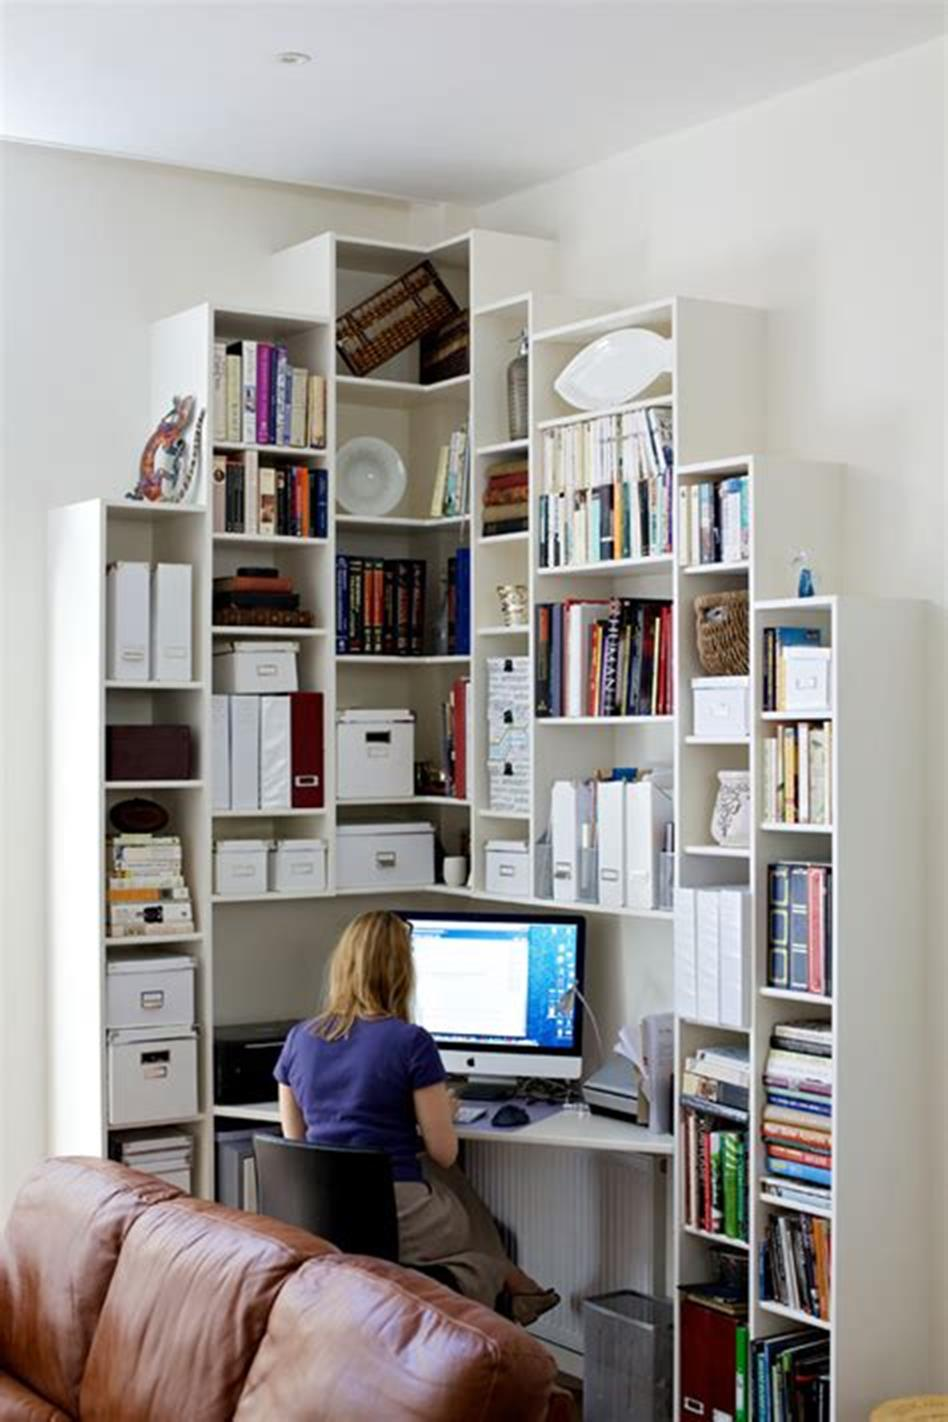 50 Best Small Space Office Decorating Ideas On a Budget 2019 11